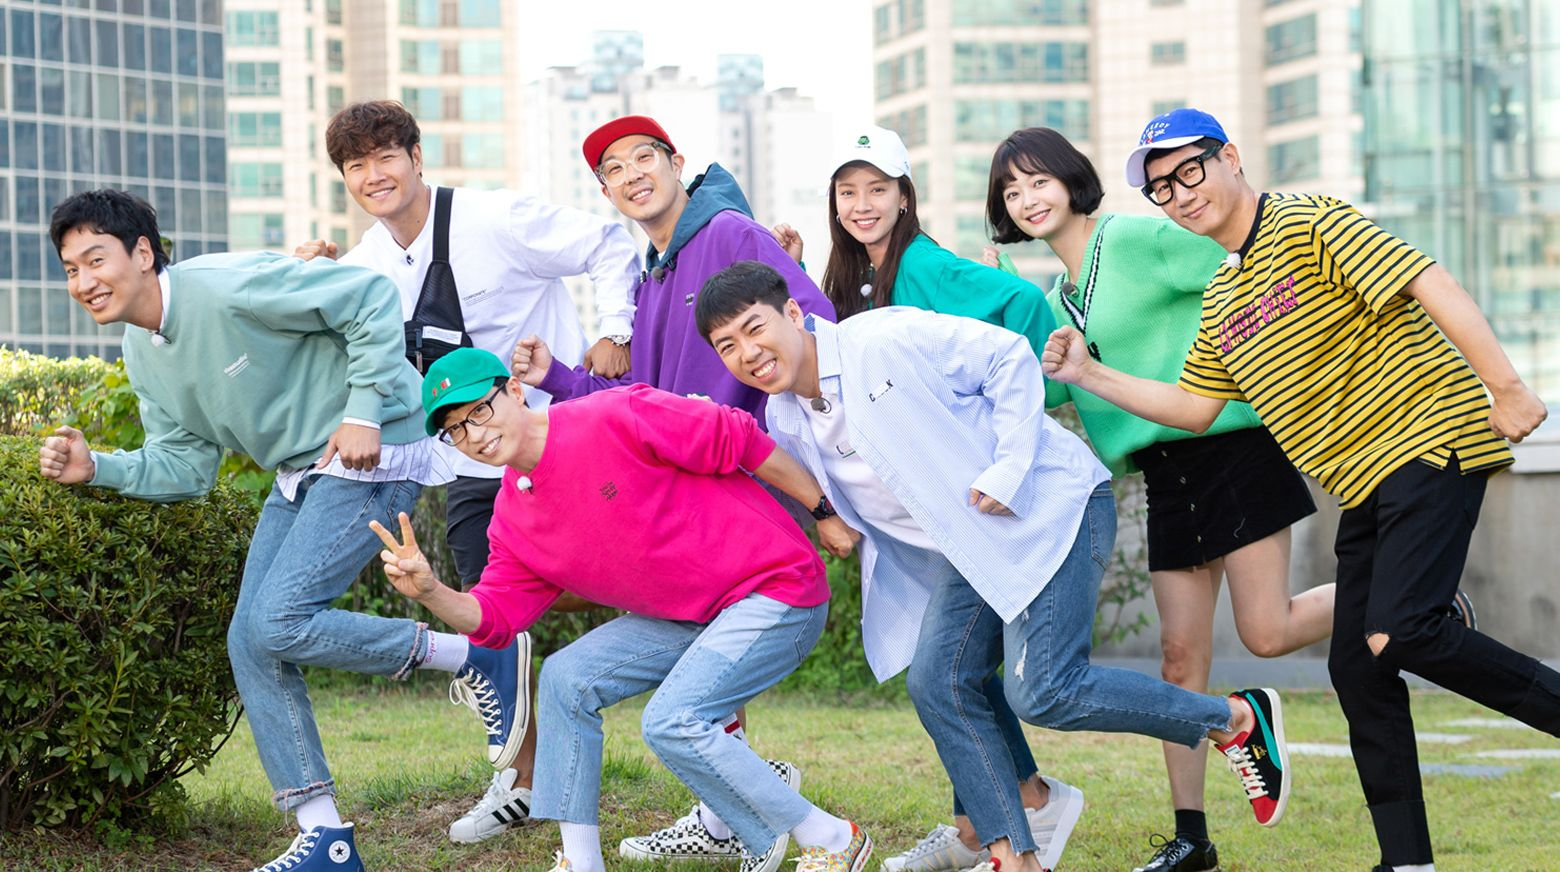 Running Man Episode 440